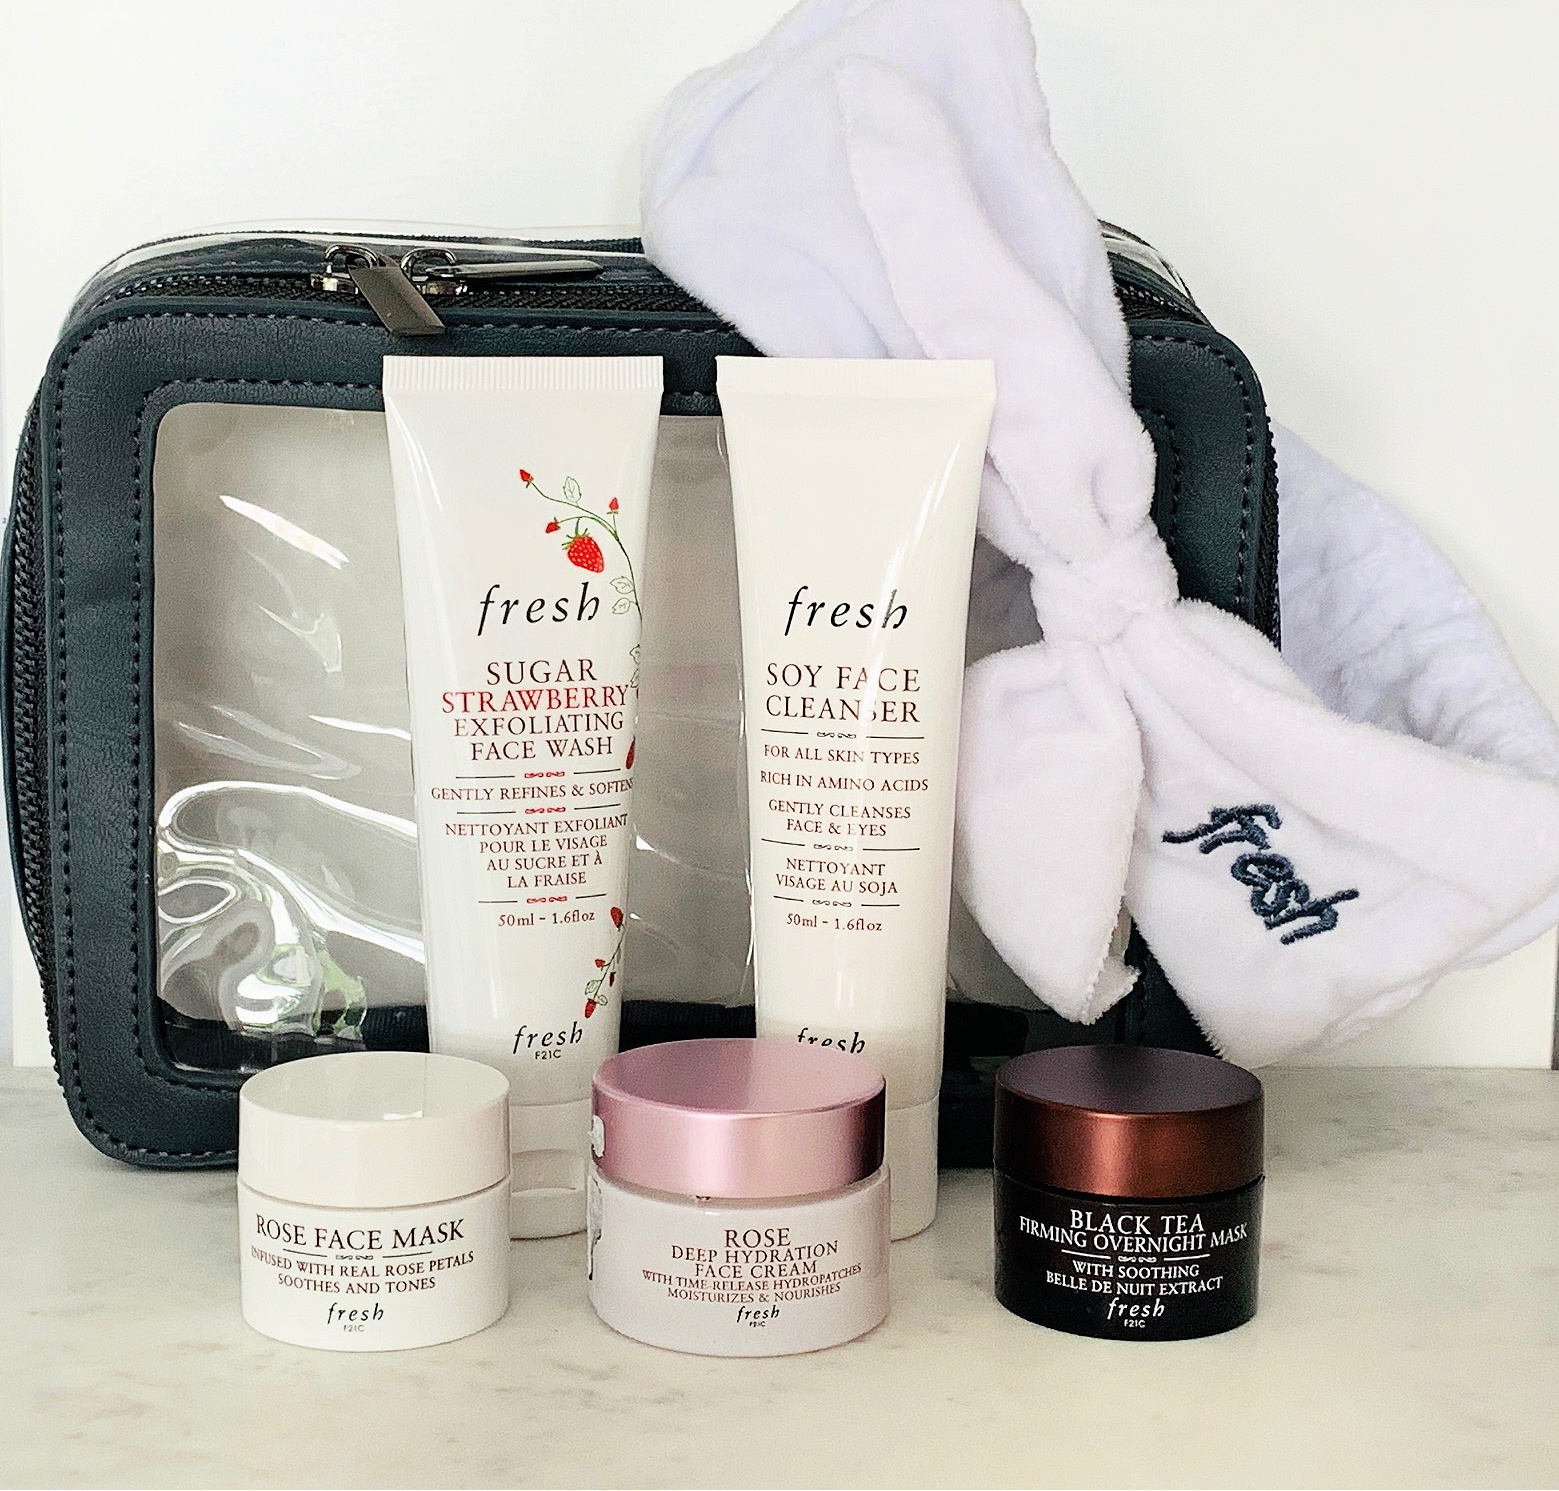 Fresh Beauty - Cult Beauty's Brand of The Month